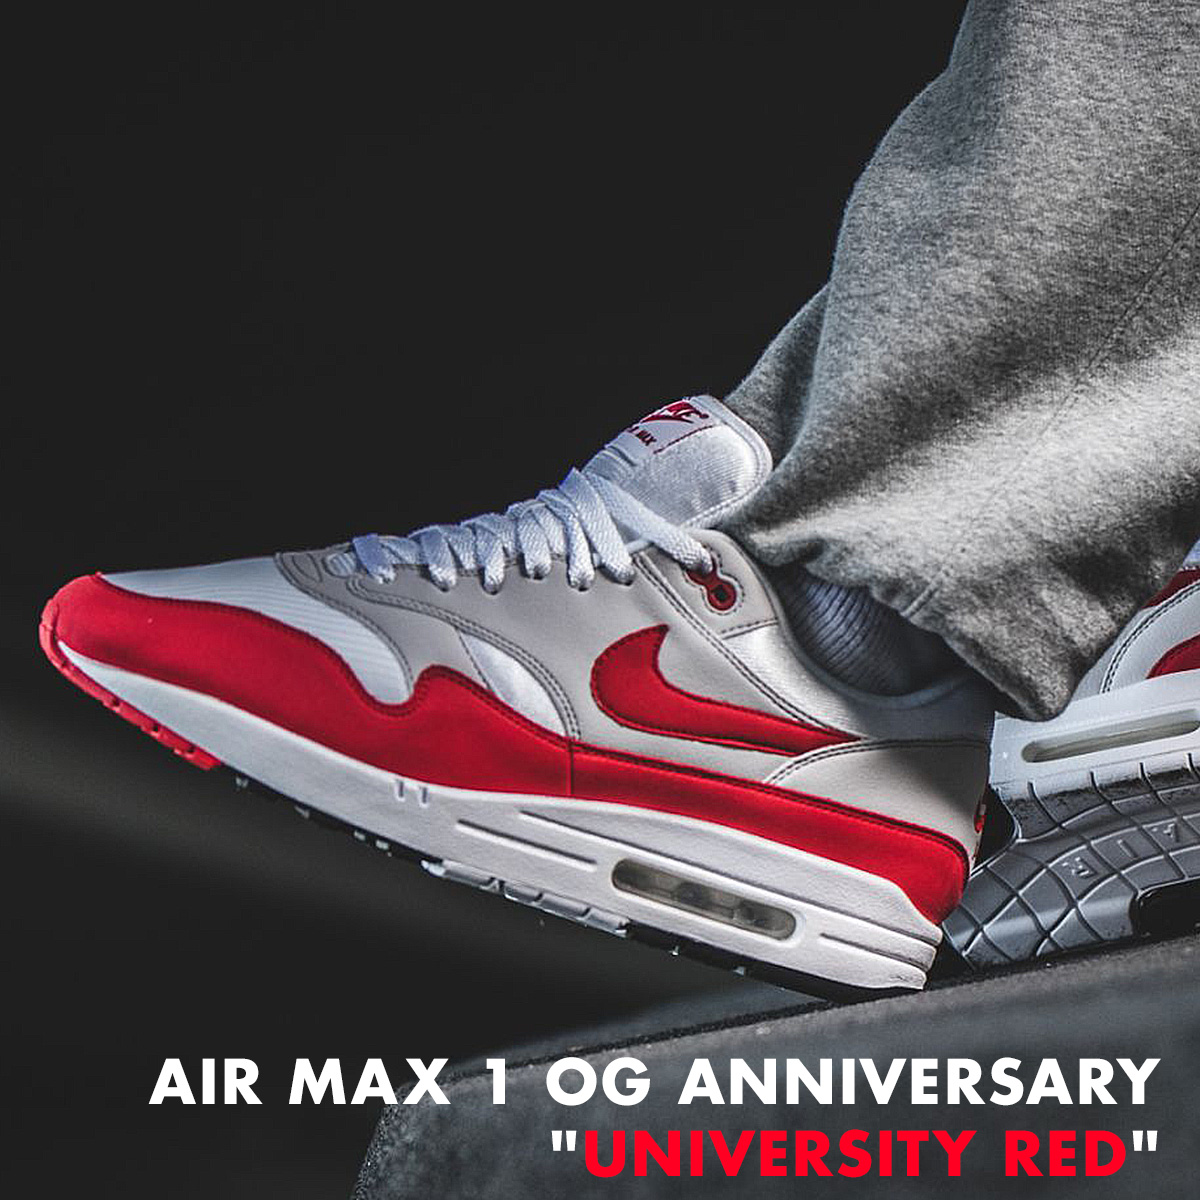 detailed look b31be 7dfff NIKE AIR MAX 1 ANNIVERSARY Kie Ney AMAX 1 anniversary sneakers 908,375-103  men s red  load planned Shinnyu load in reservation product 2 9 containing    182